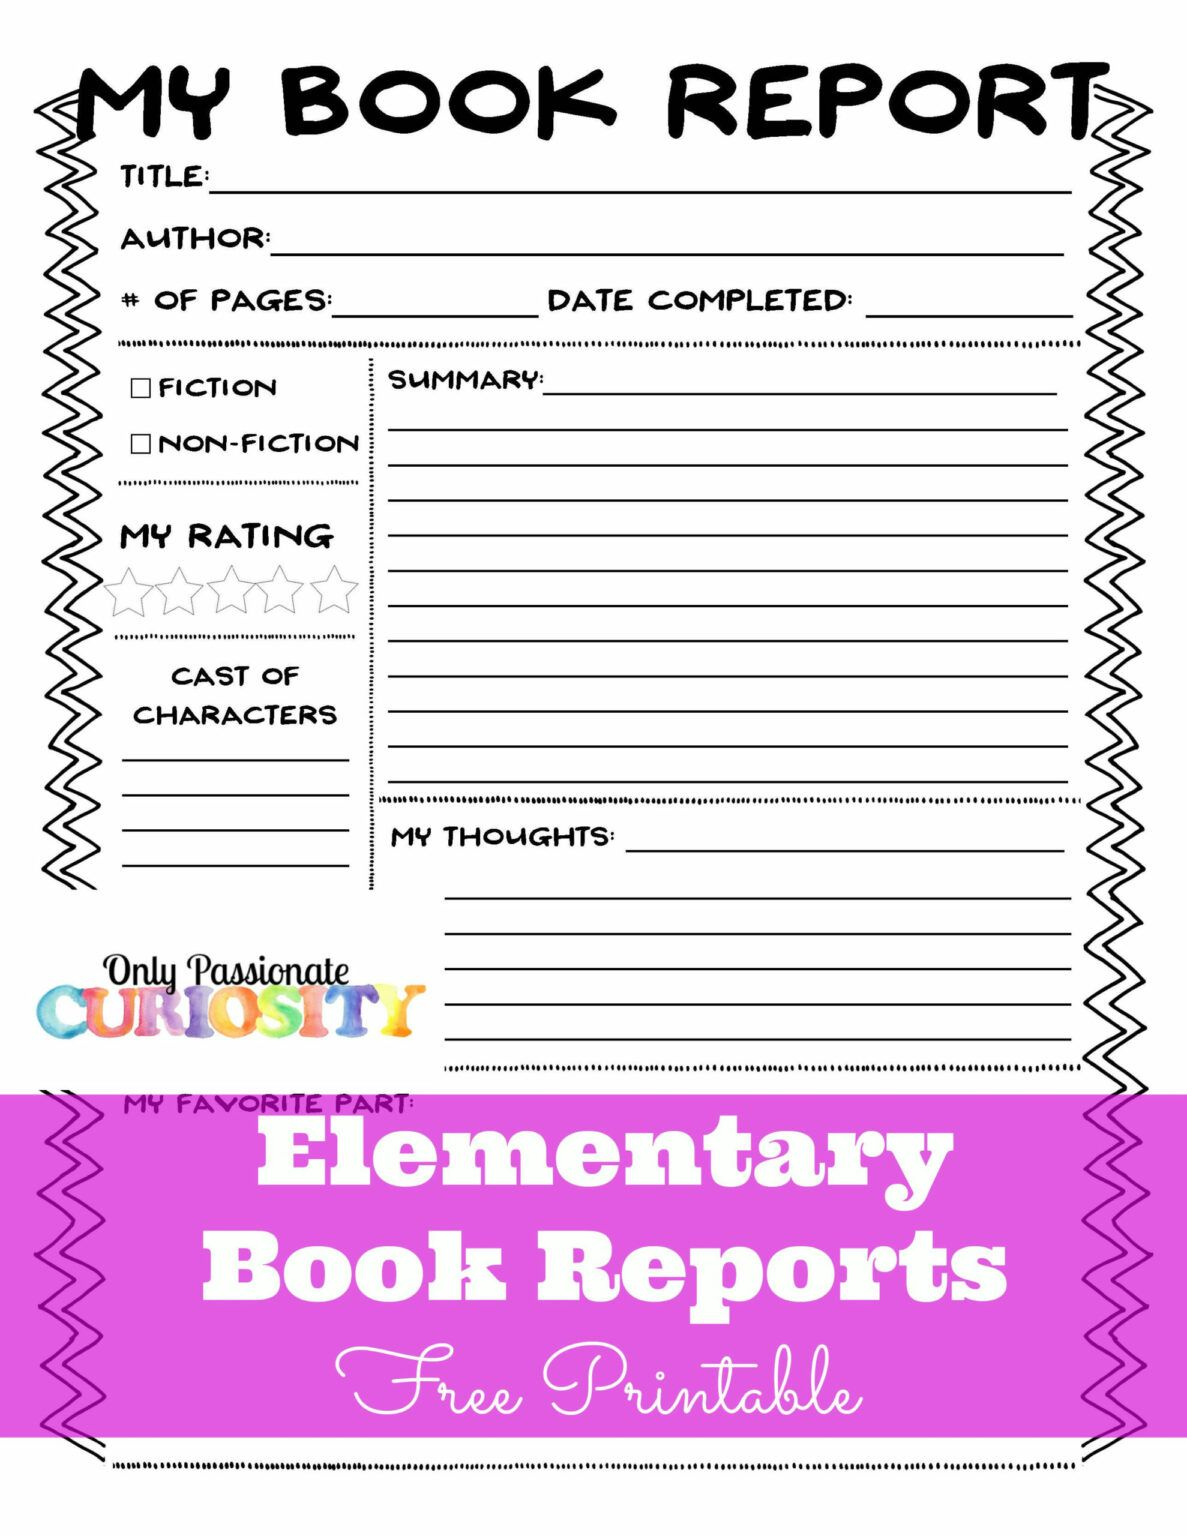 Sandwich Book Report Printout Intended For Sandwich Book Report Printable Template In 2020 Book Report Templates Elementary Books Book Report